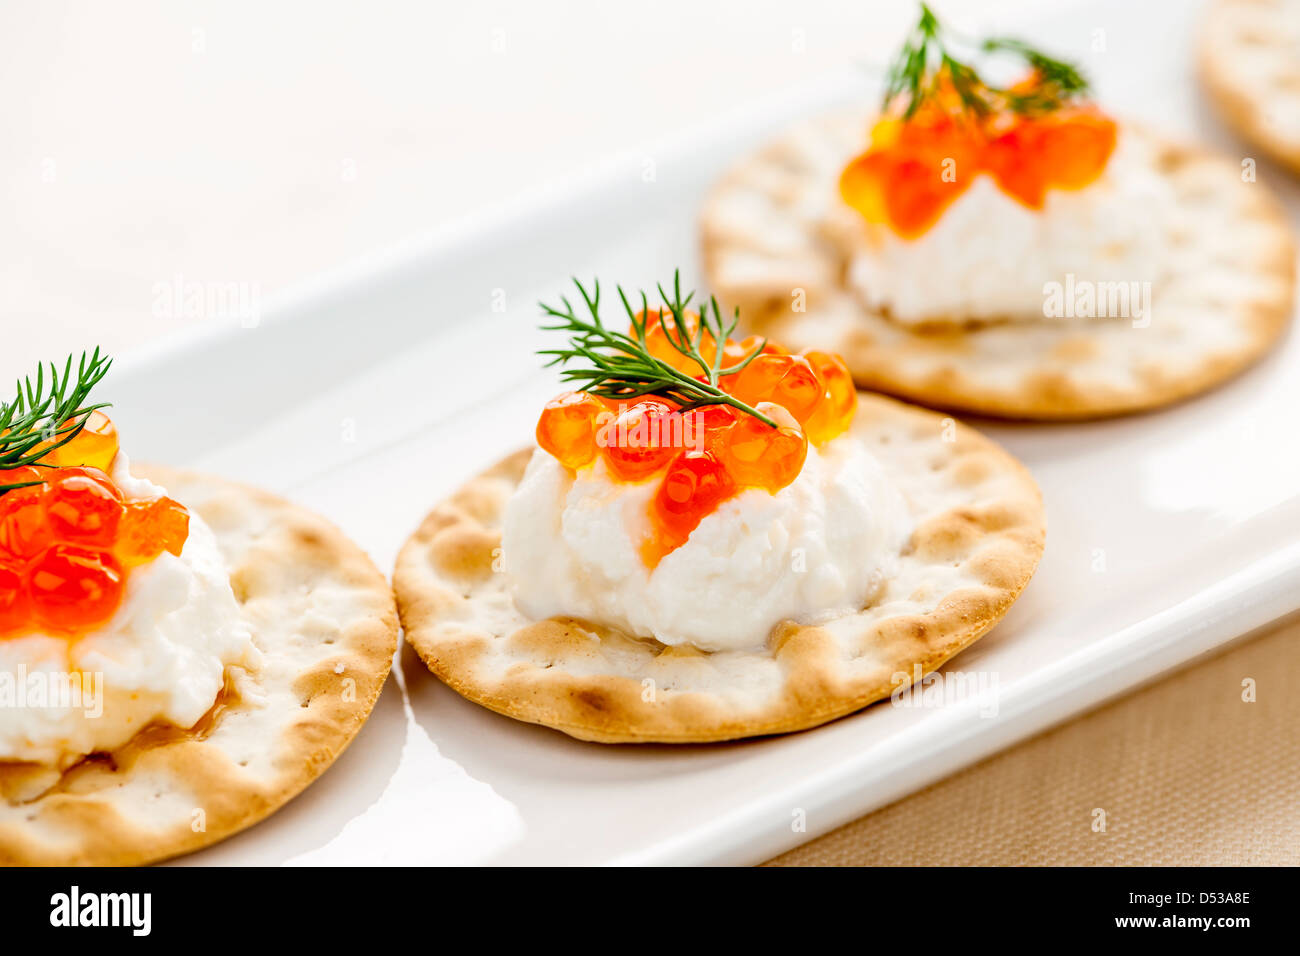 Closeup of caviar and cream cheese appetizer on crackers - Stock Image